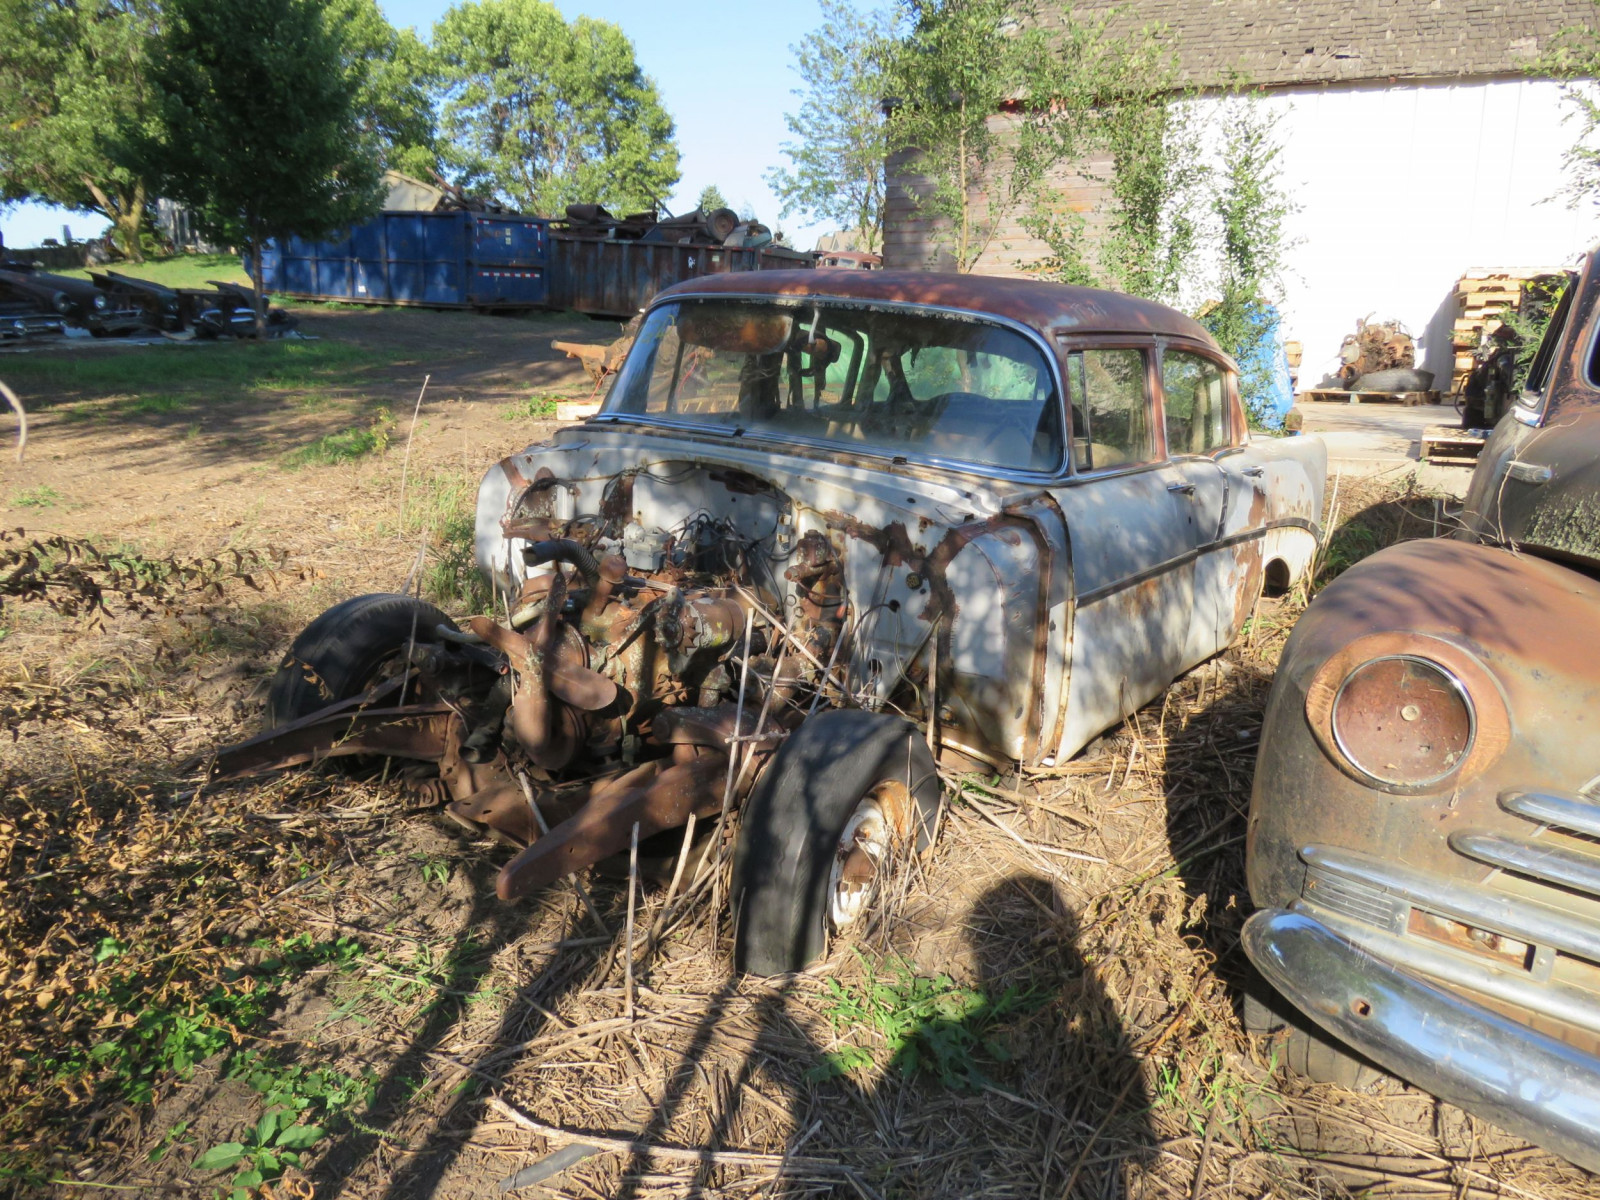 1956 Chevrolet 4dr Sedan for Project or Parts - Image 2